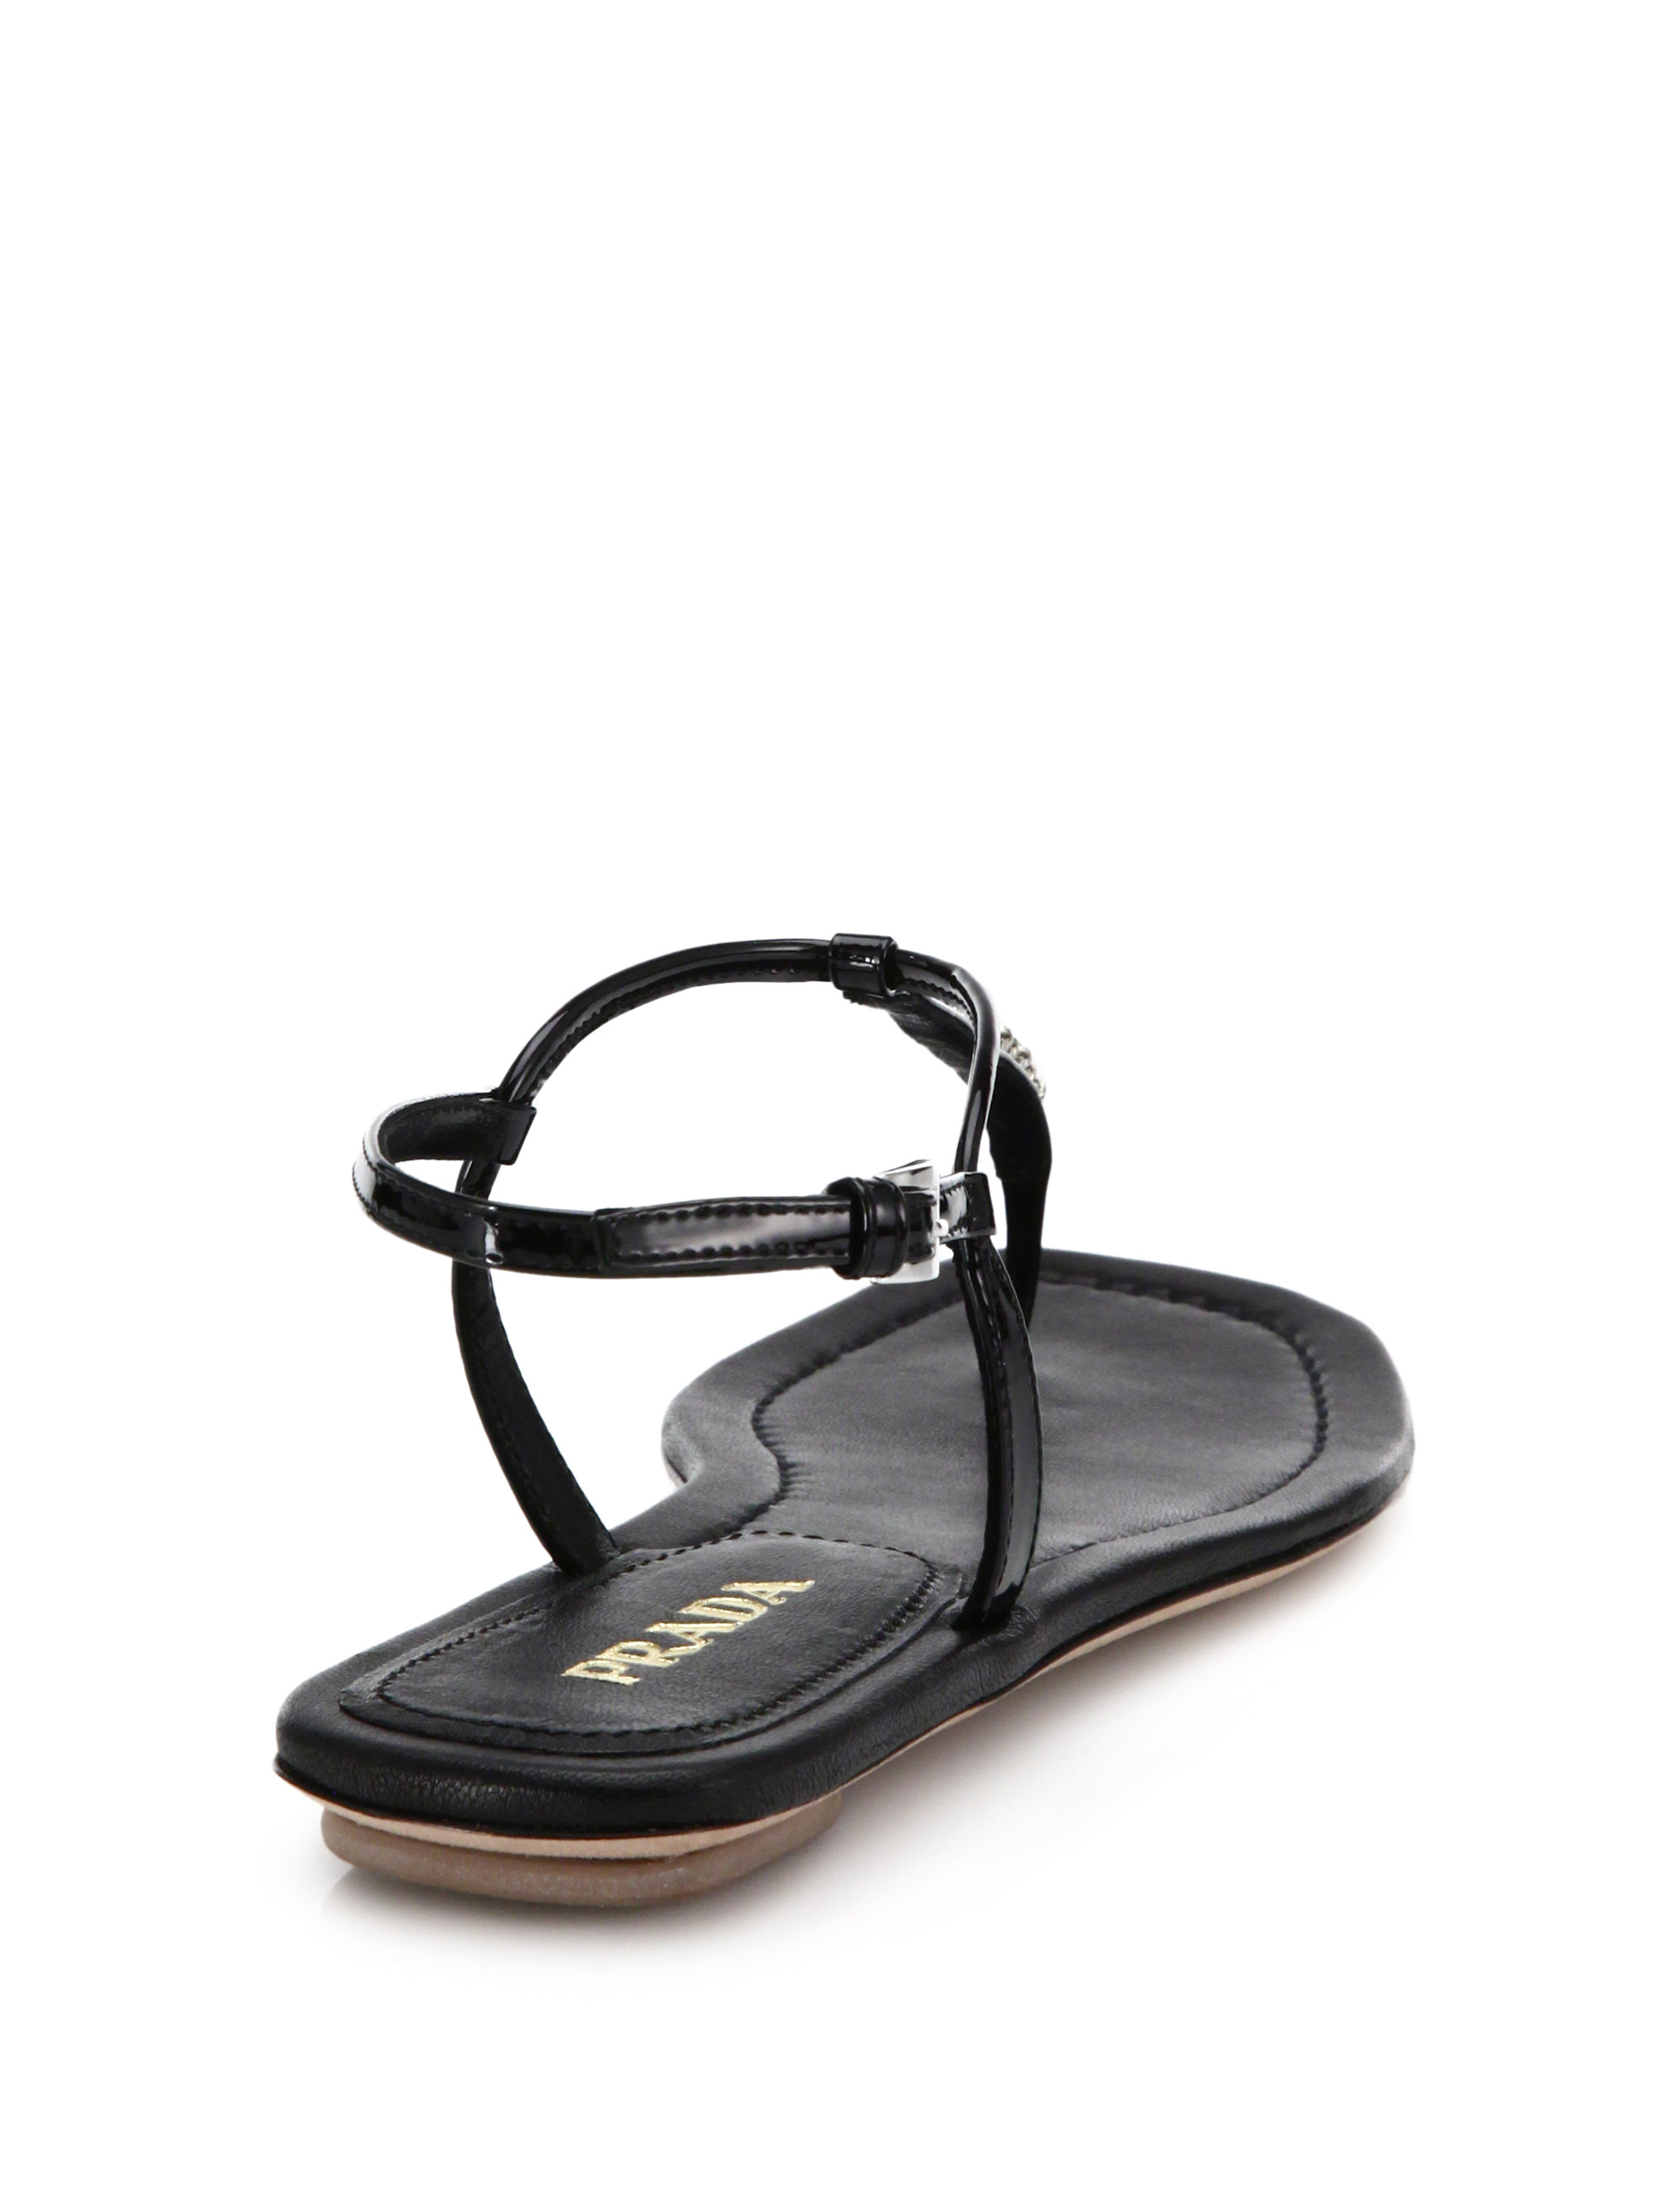 82221965e Lyst - Prada Swarovski Crystal Flat Leather Sandals in Black